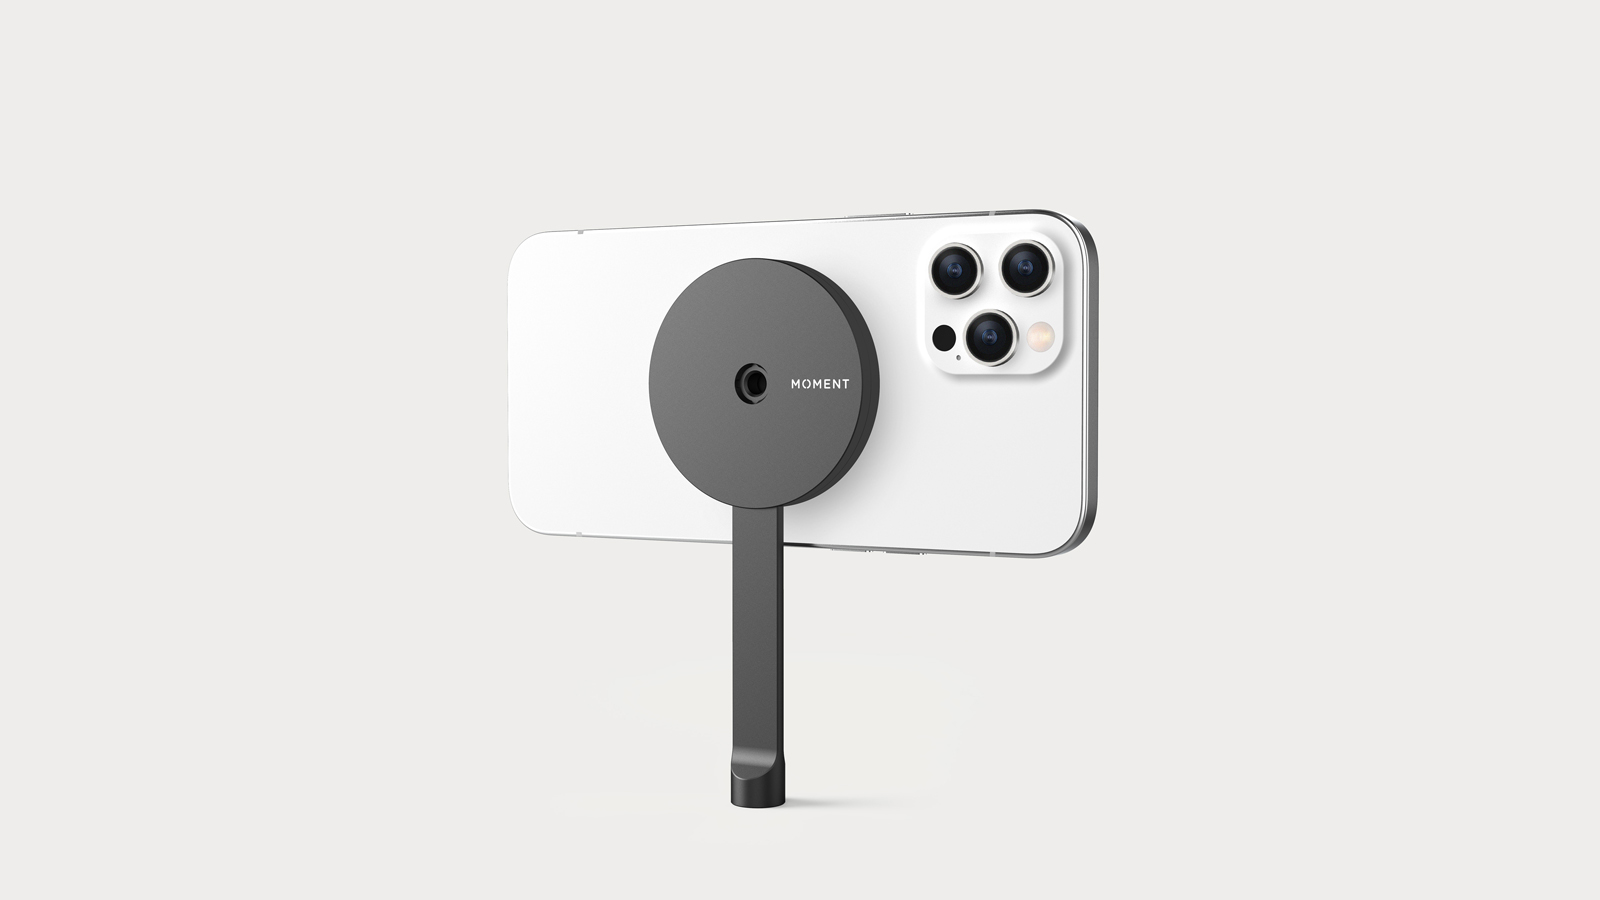 Moment MagSafe accessories for iPhone 12